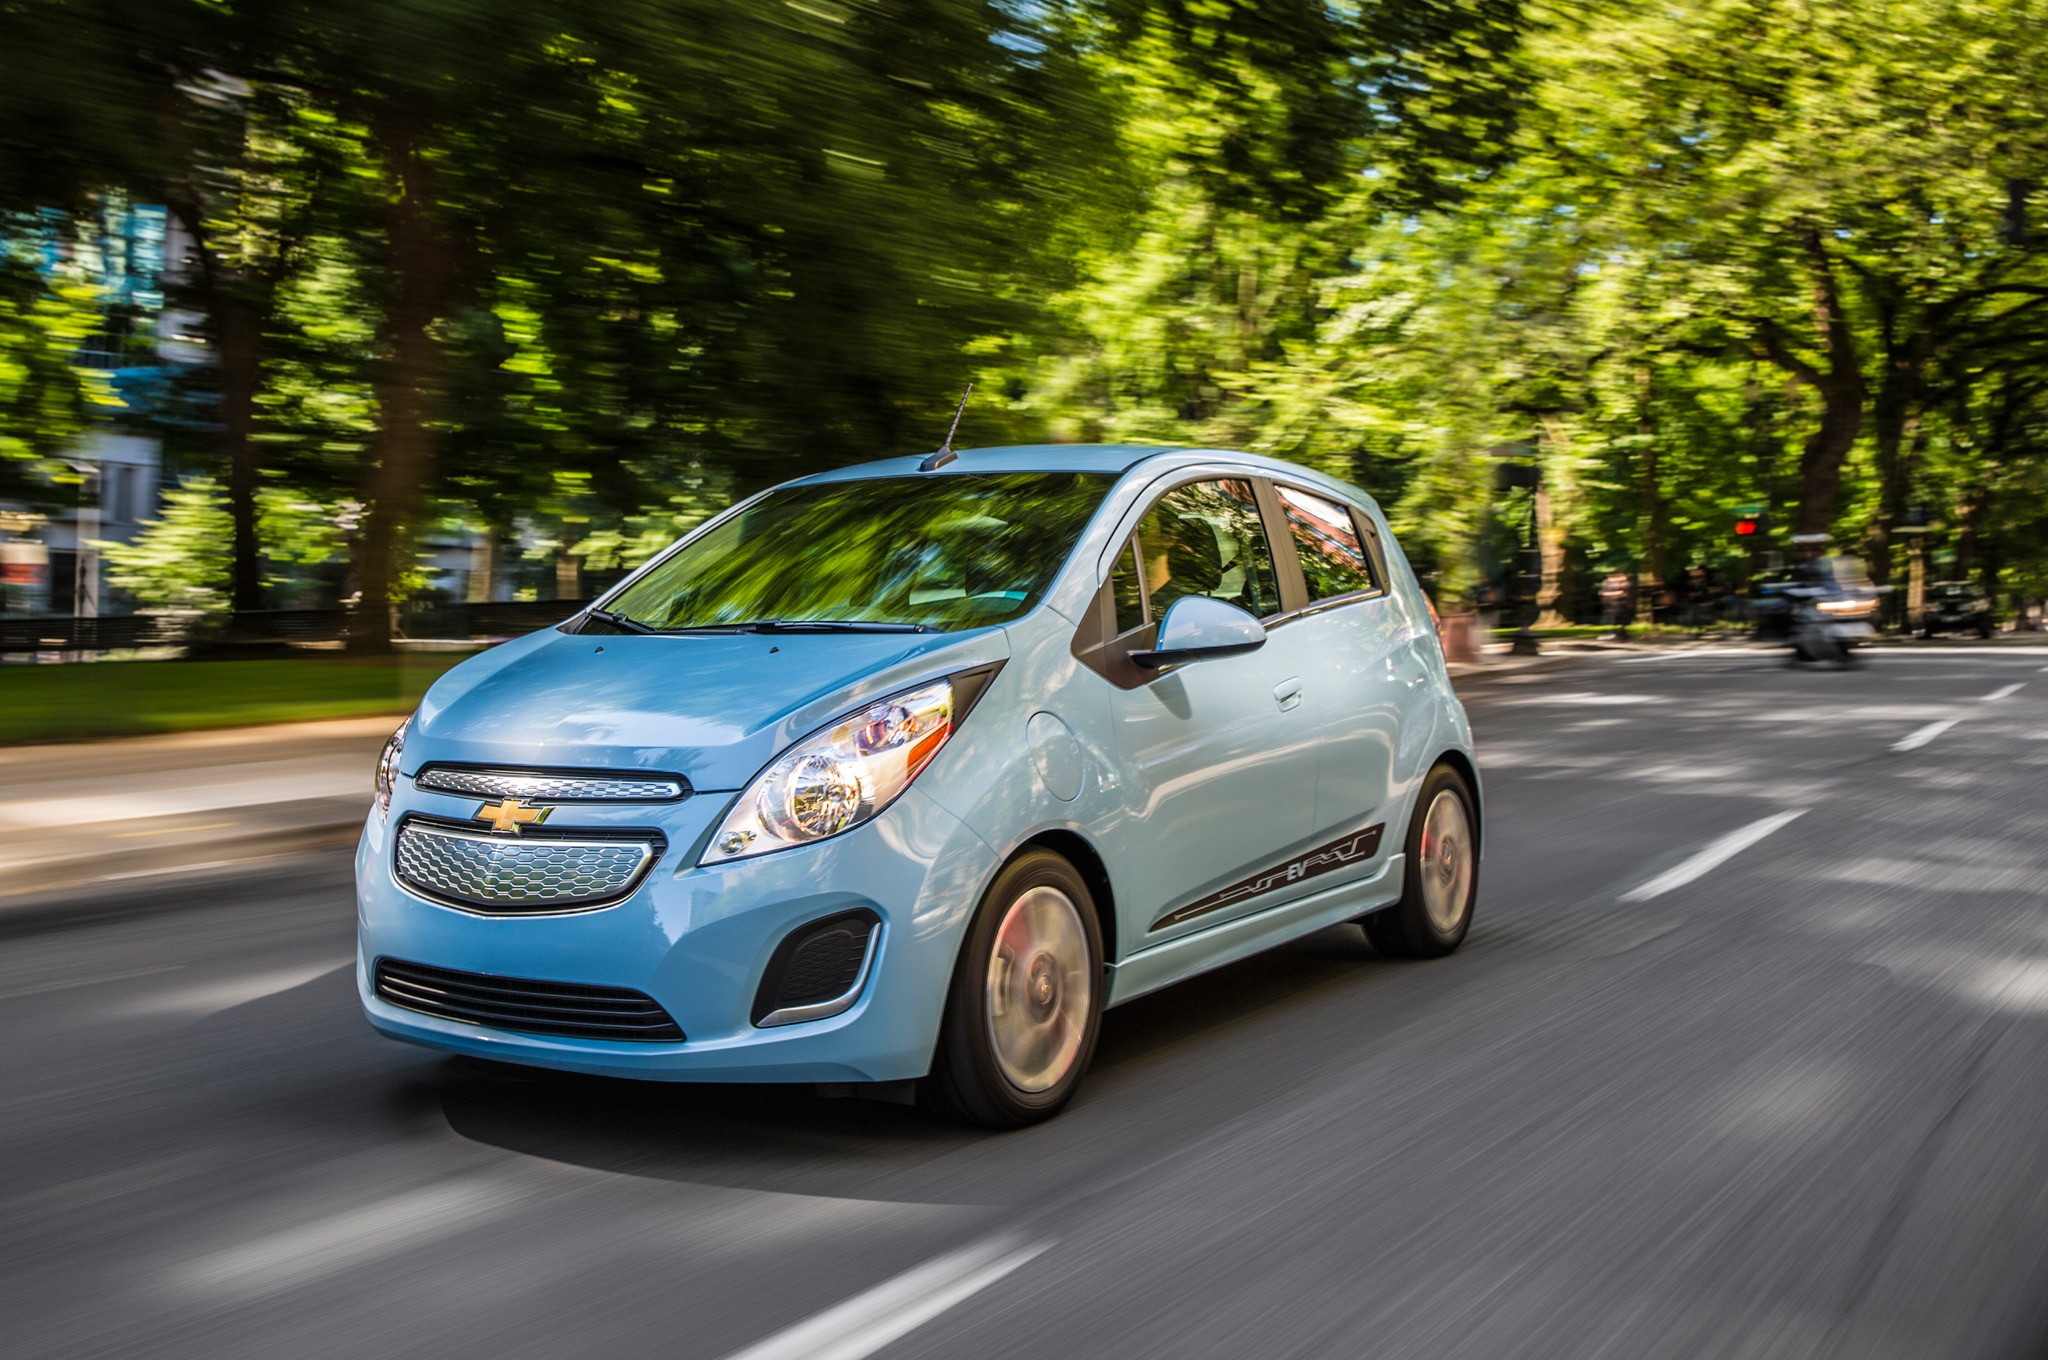 2016 Chevrolet Spark EV front three quarter in motion gm invests $350 million in mexico plant to build 2016 chevrolet cruze 2017 Chevy Spark EV at edmiracle.co